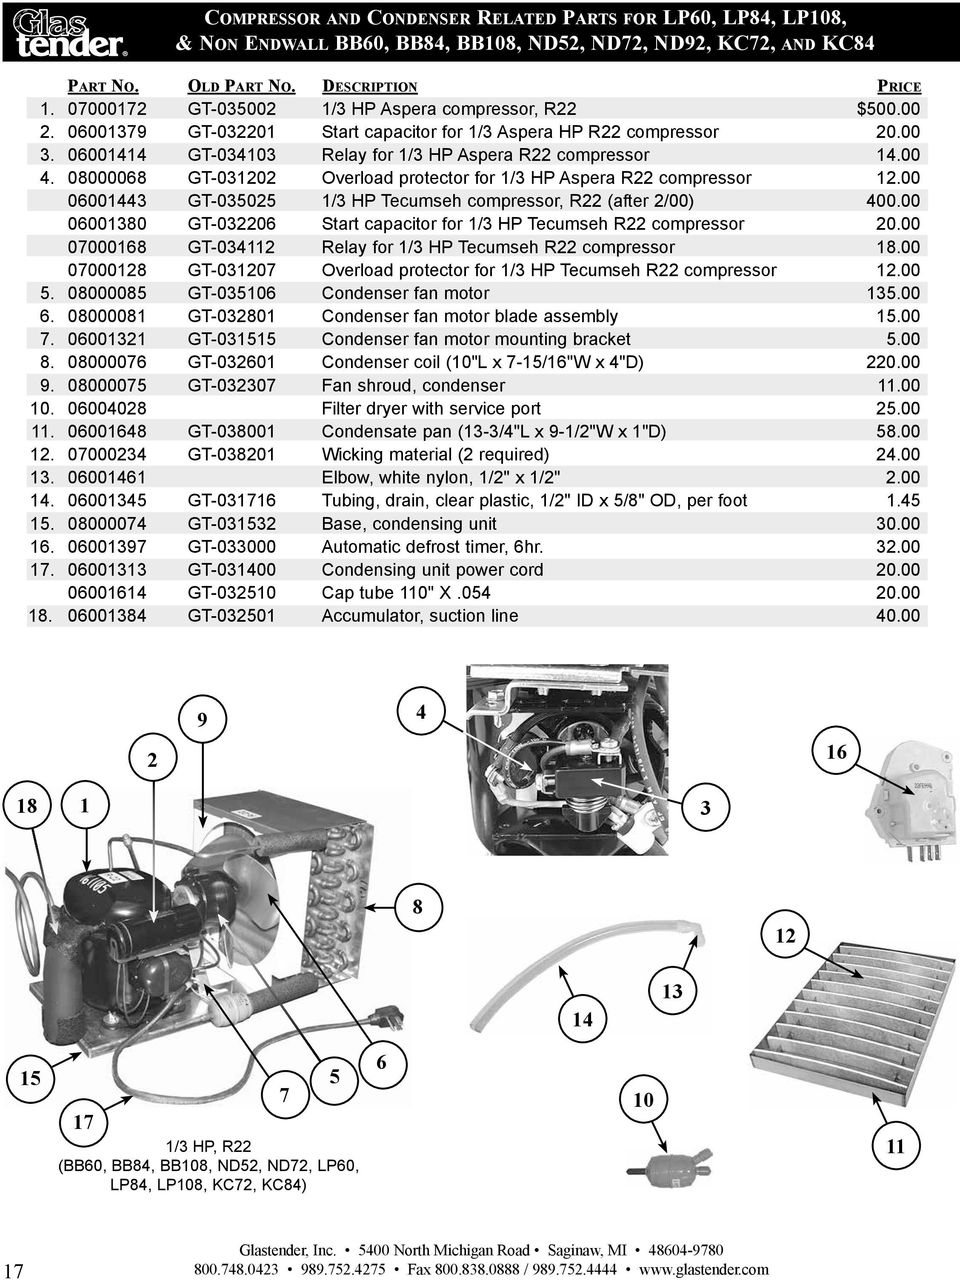 Replacement Parts Diagram And Parts List For Tecumseh Allproducts